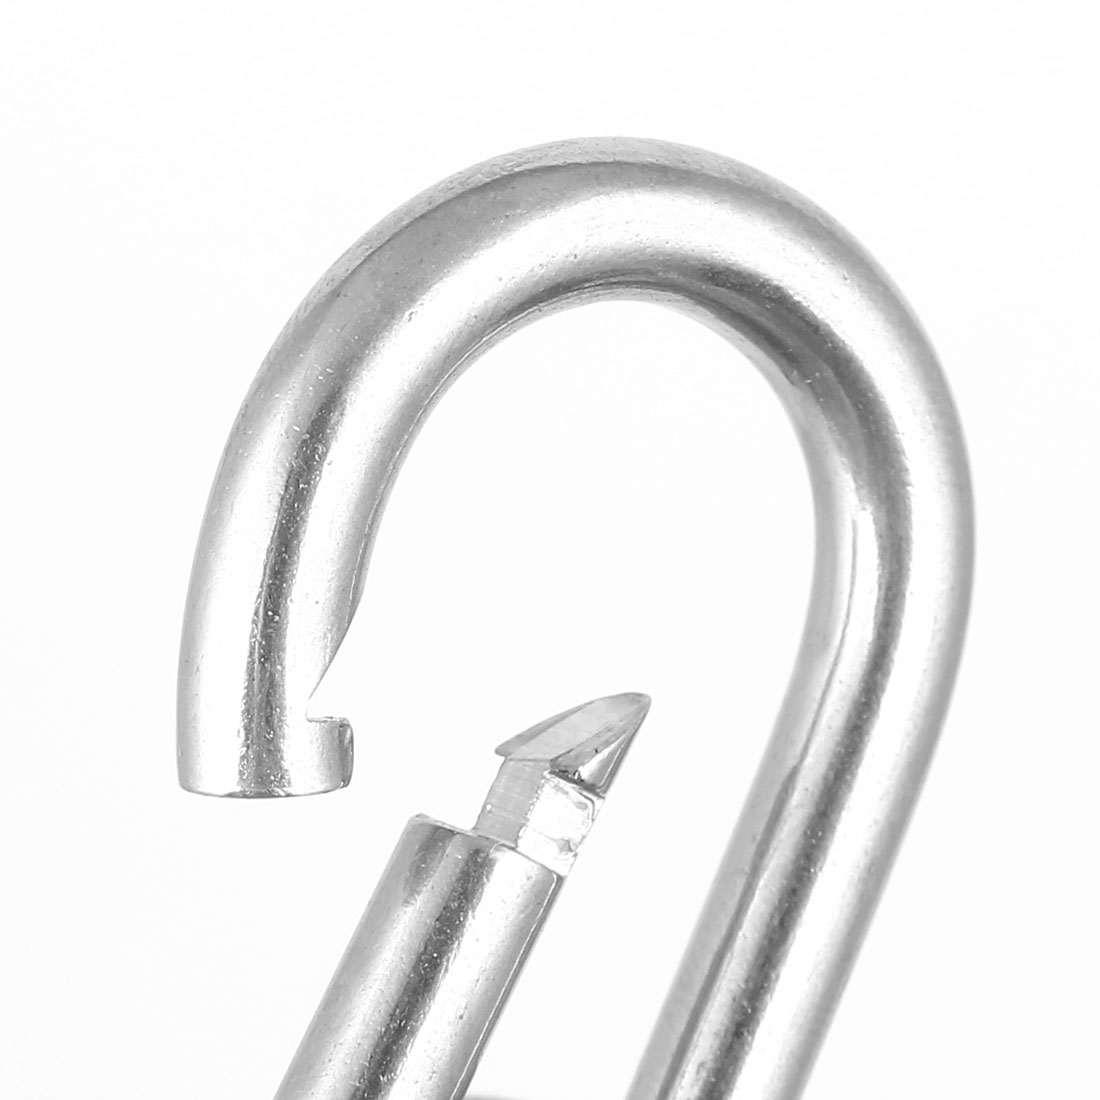 4mm Thickness 304 Stainless Steel Spring Carabiner Snap Hook Camping Keyring - image 1 de 3